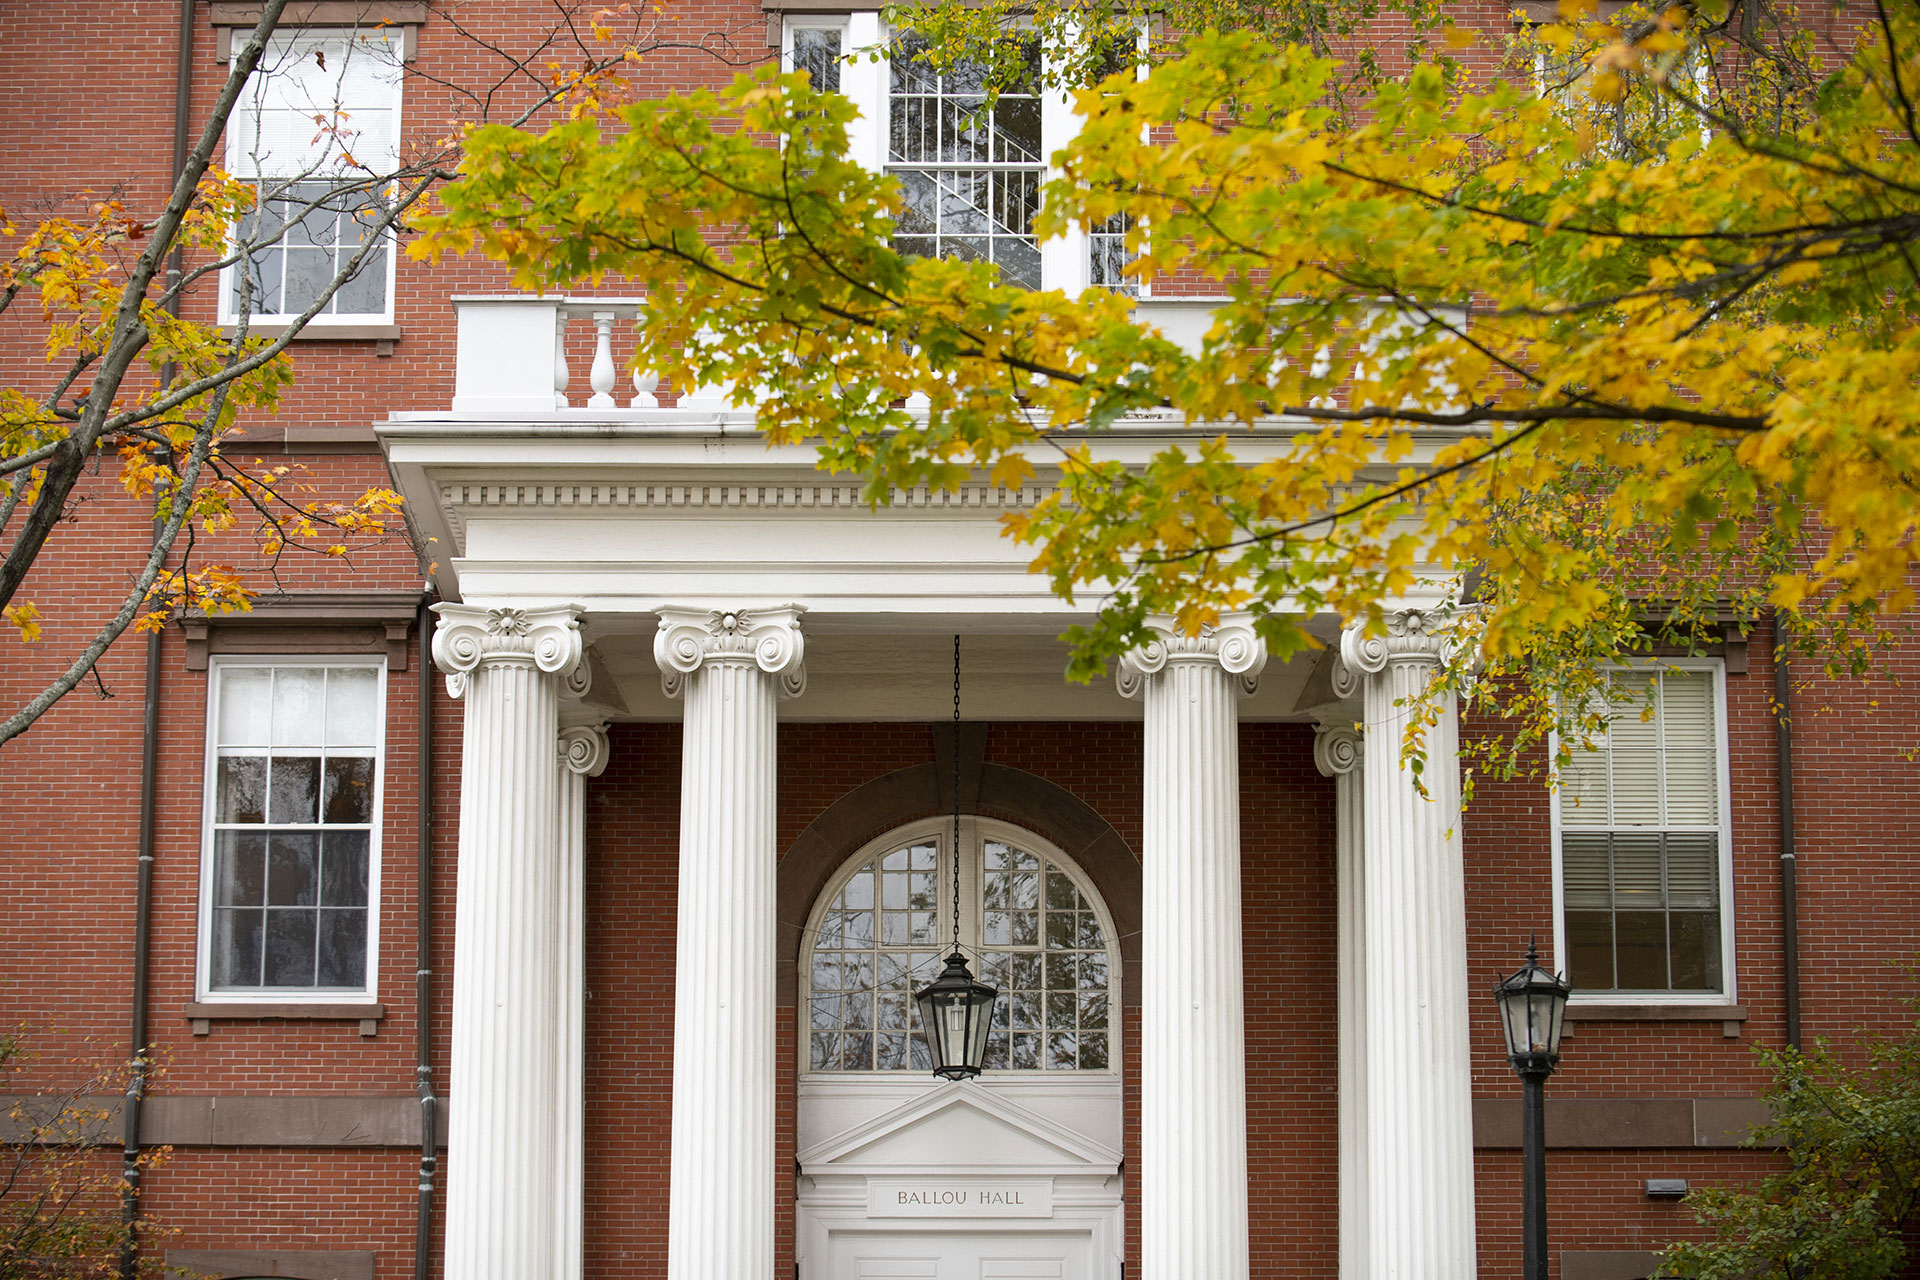 Ballou Hall on Tufts University's Medford campus